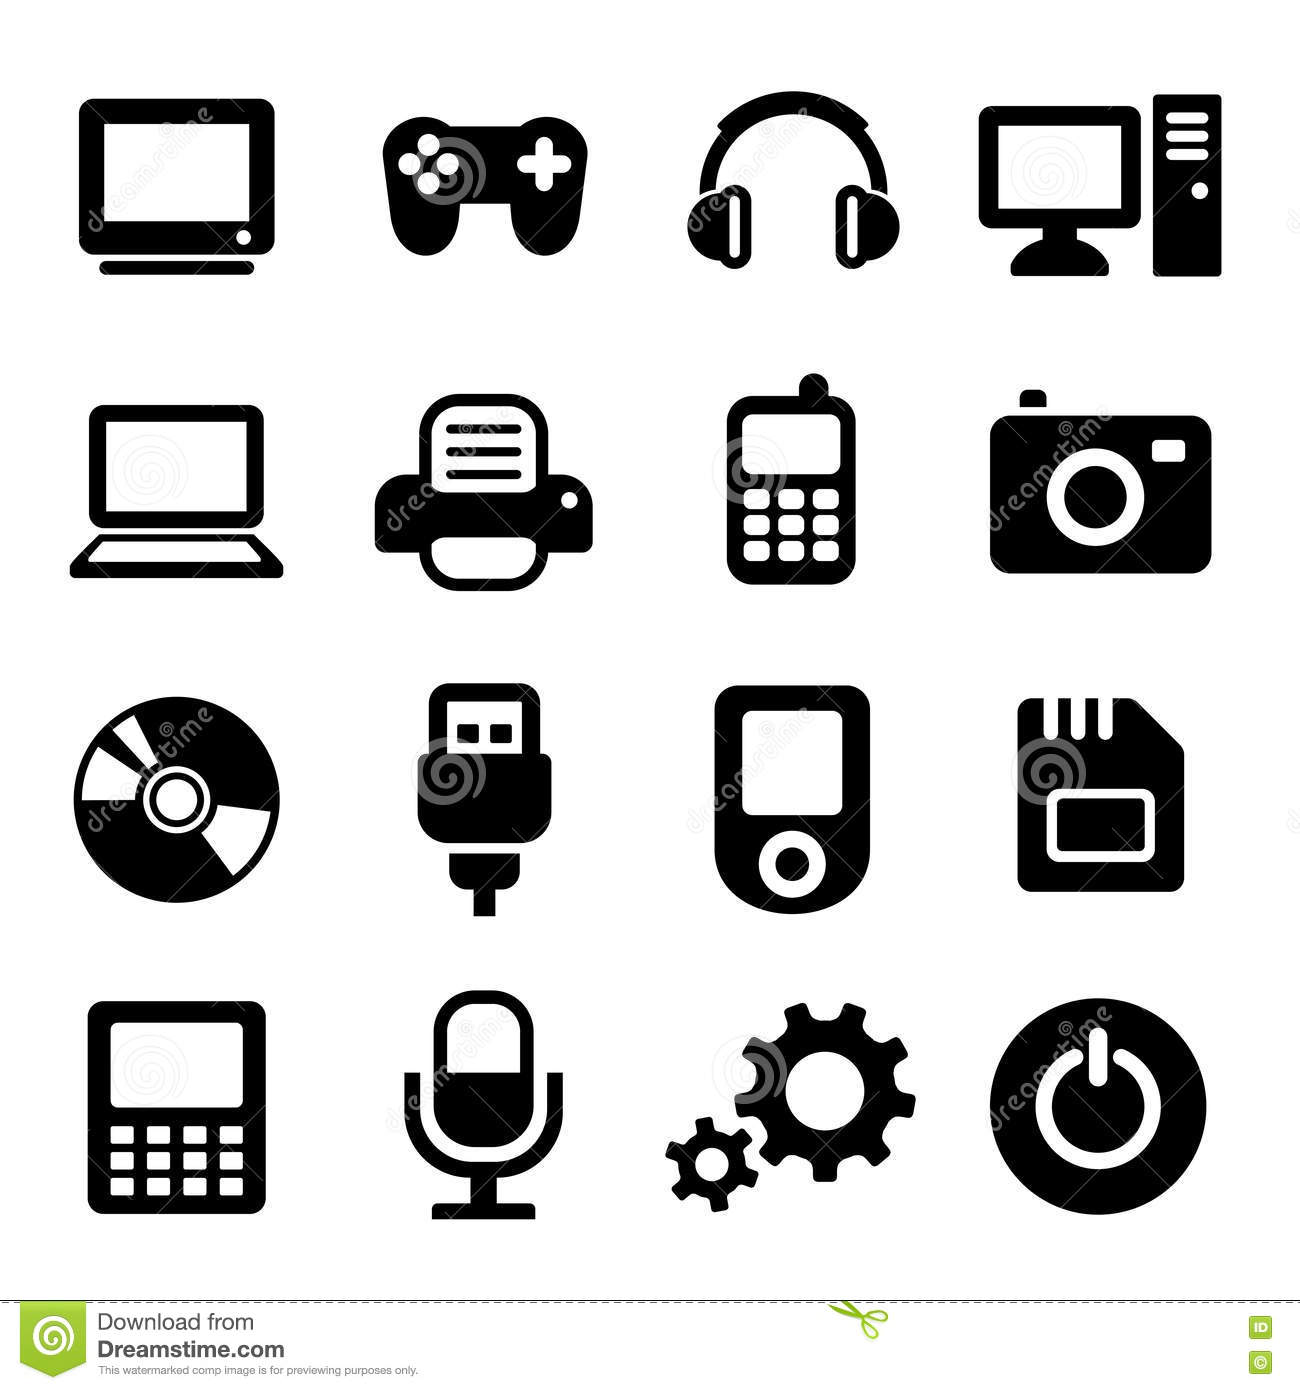 Simpleicon  munication besides Liner Instagram New Design Round Social Media Instagram 854130 likewise Stock Photo Icon Electronic Gadgets Image29514710 together with Html5 Logo together with Dedale. on multimedia design